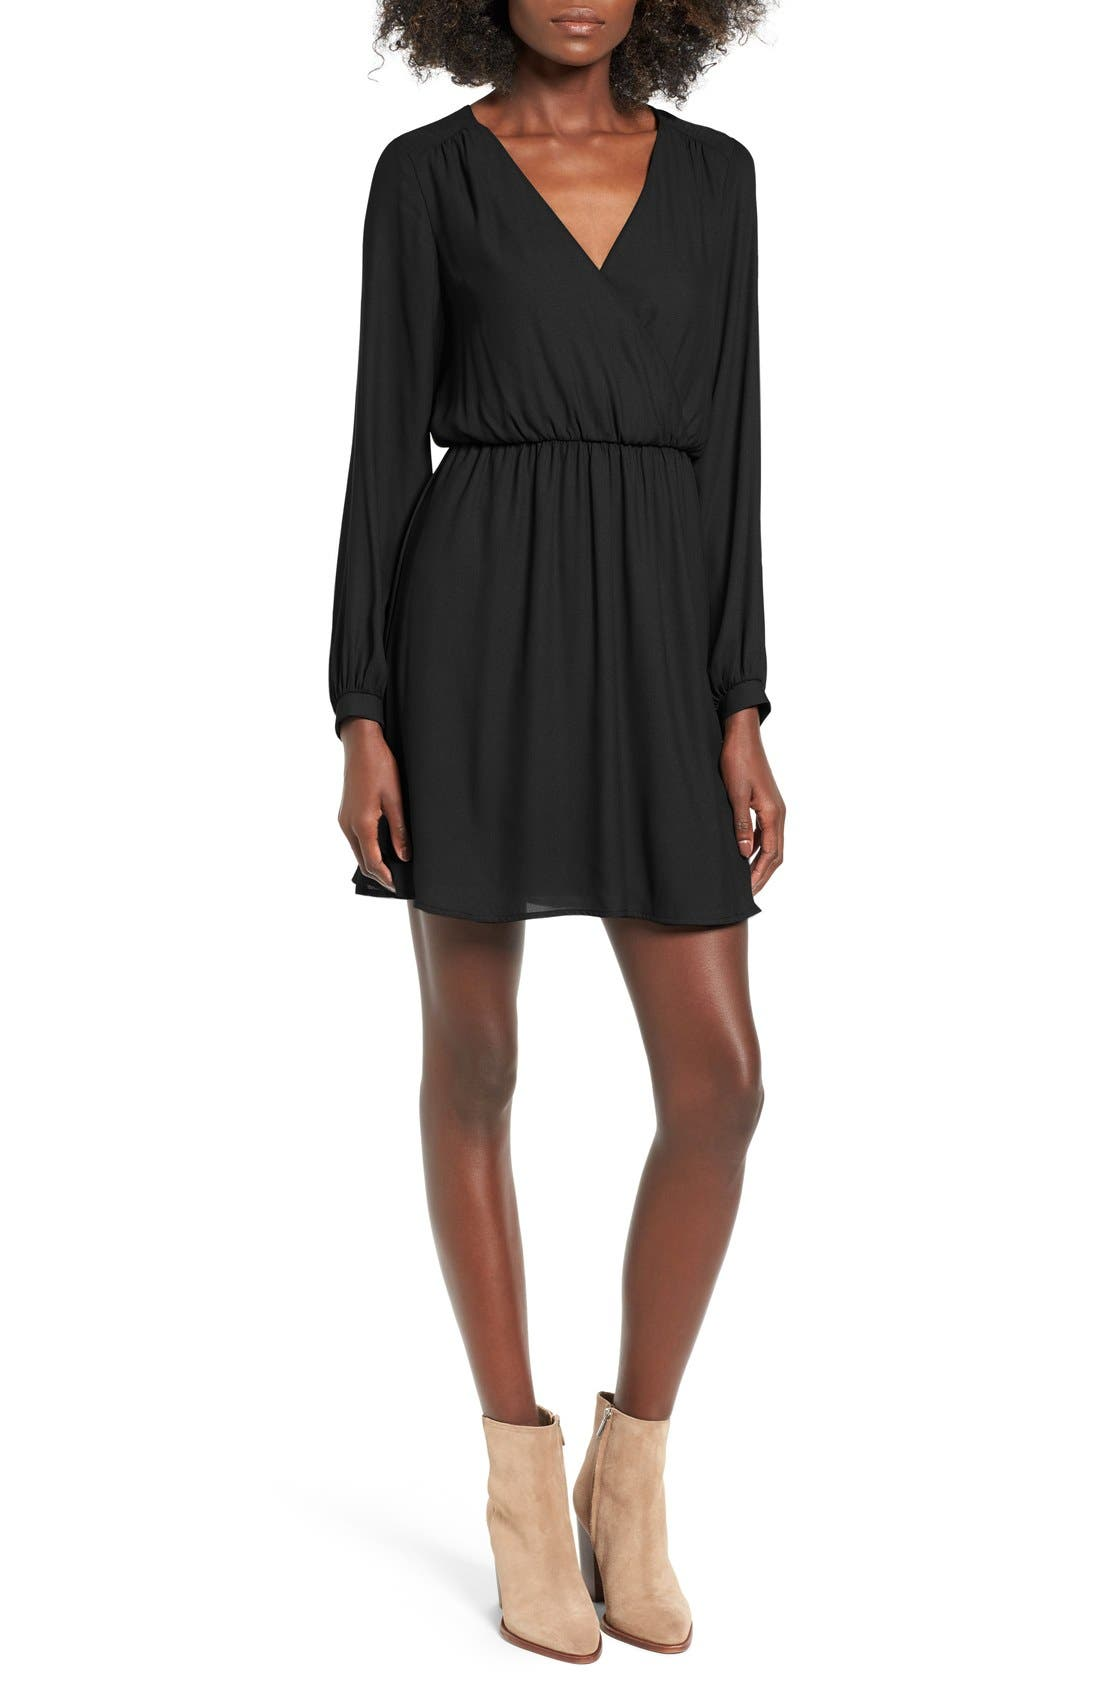 Alternate Image 1 Selected - Lush 'Emma' Surplice Skater Dress